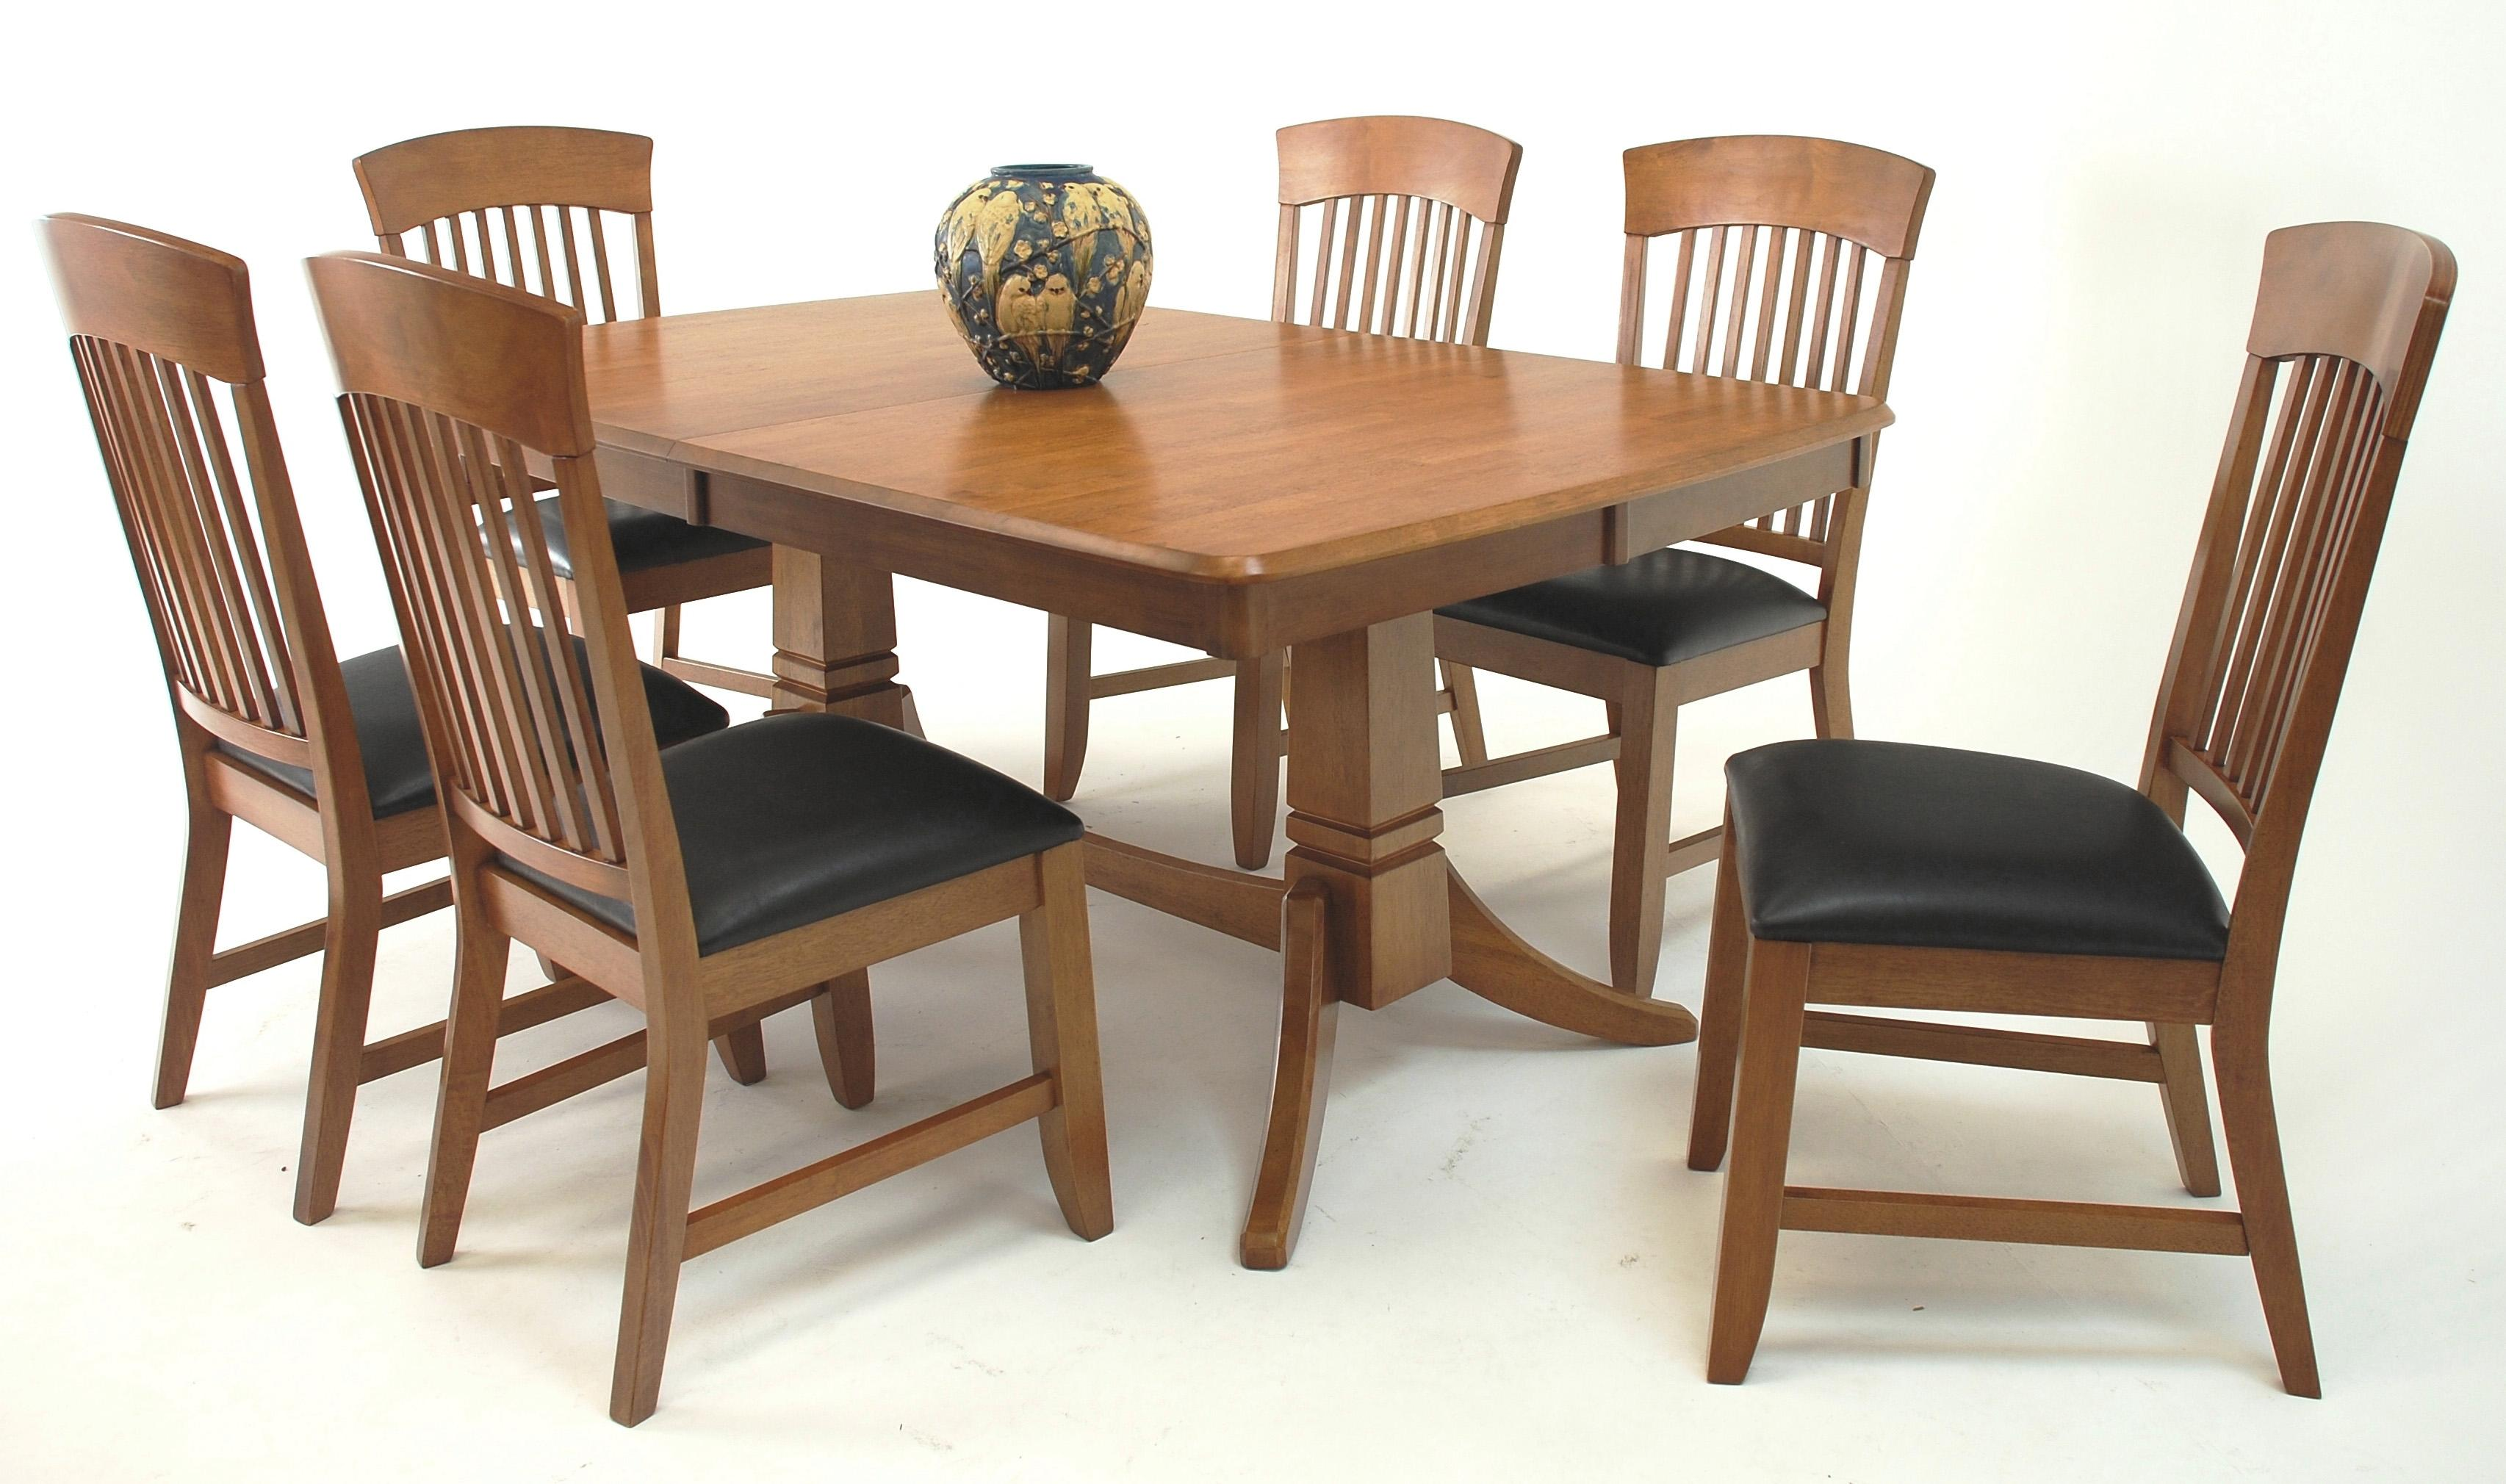 Suburban home trestle dining table and chair set broadway for Dining set with bench and chairs